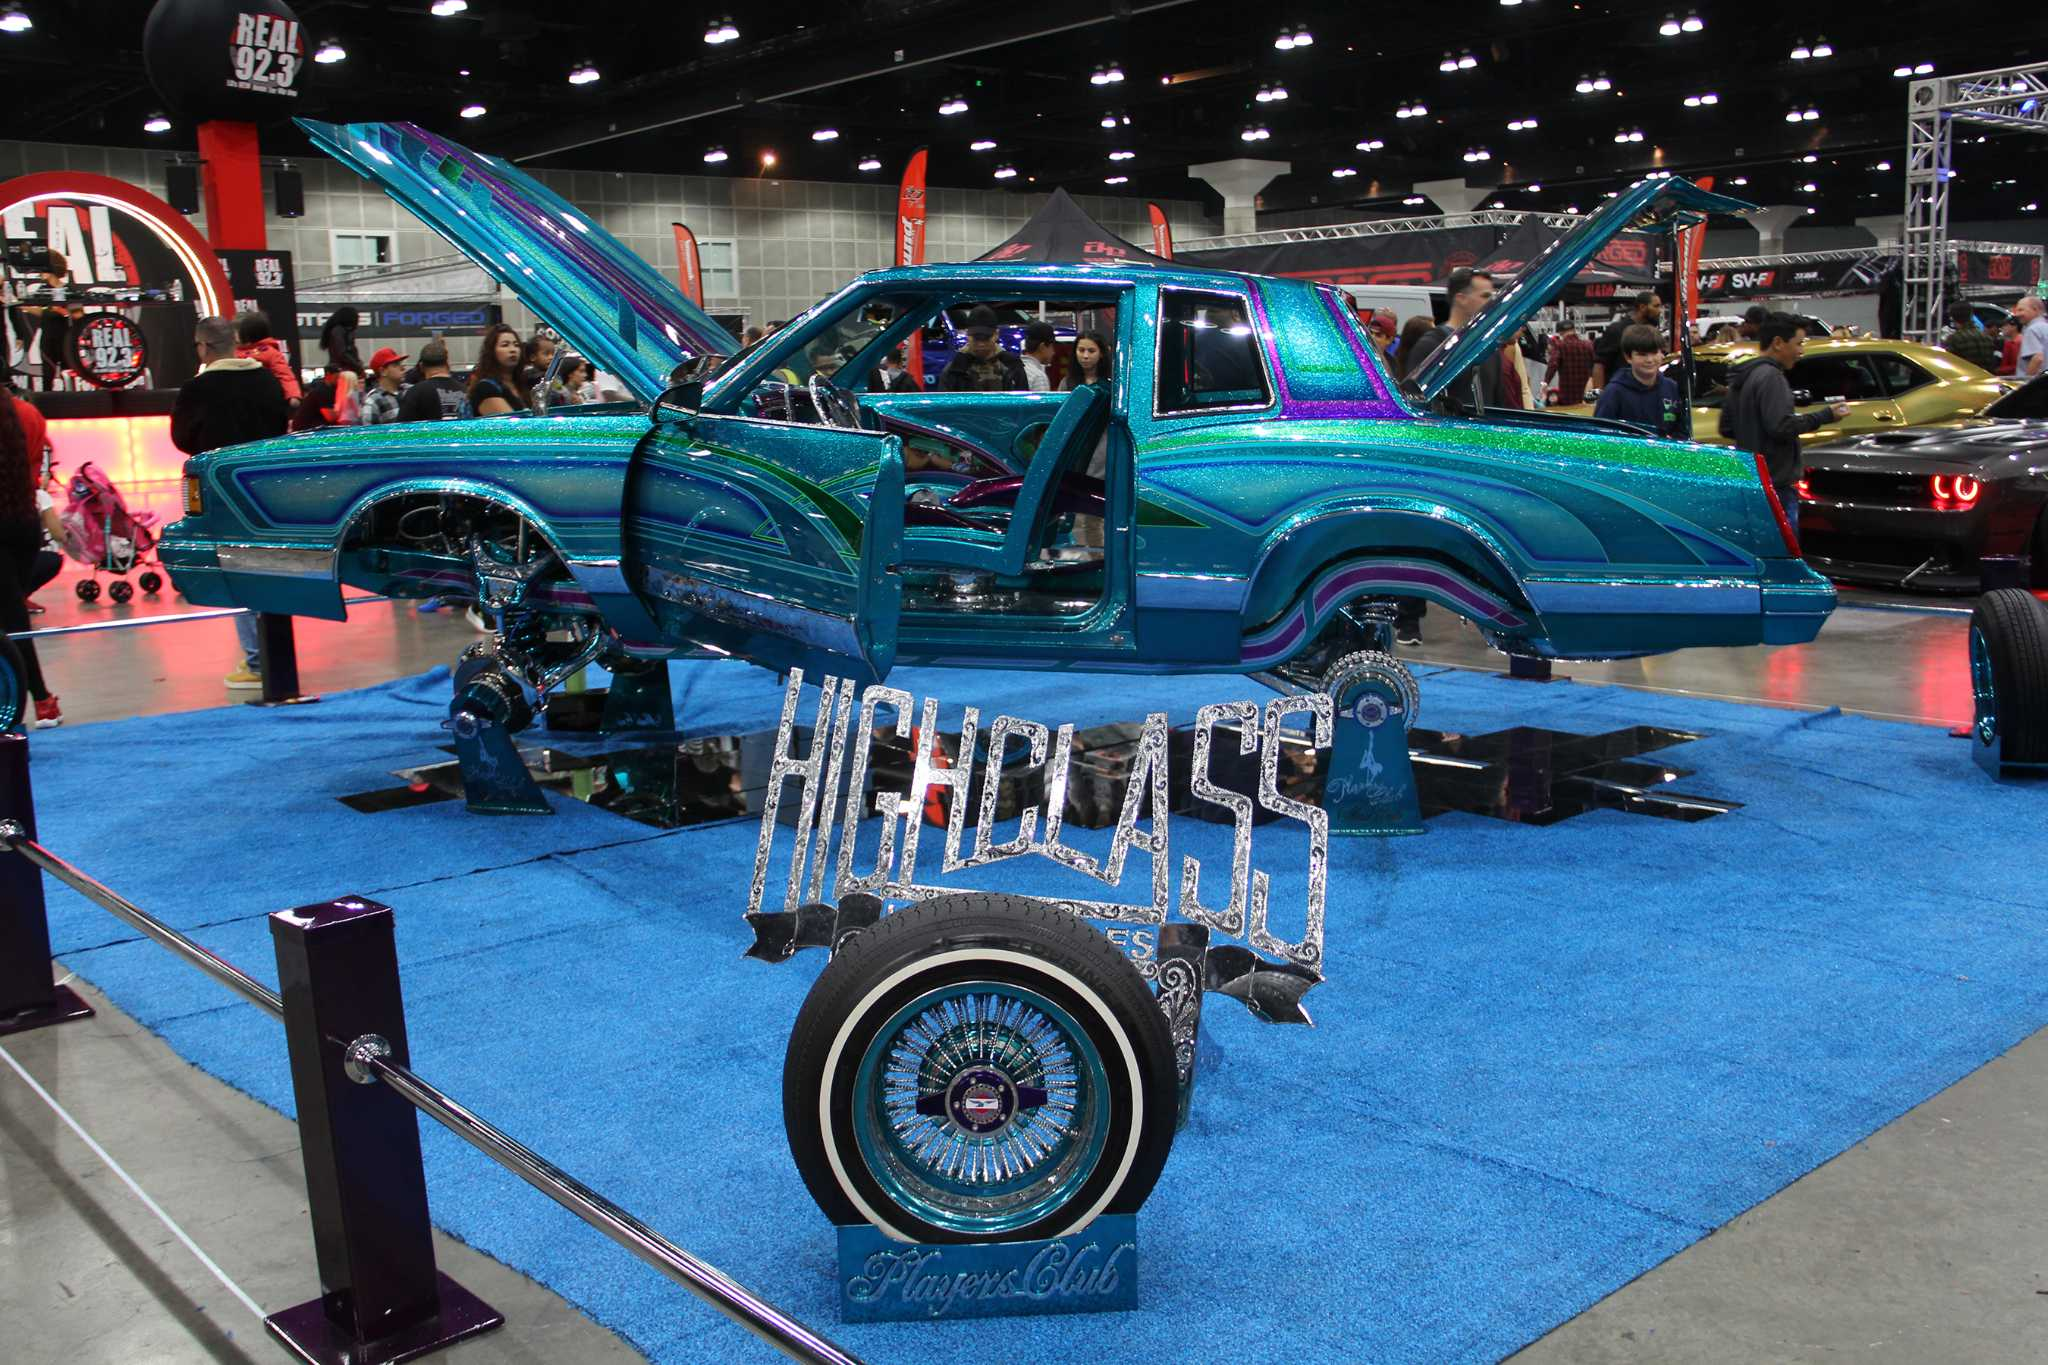 Heidi's Customs & Classics: DUB billed as the nation's largest custom car show tour